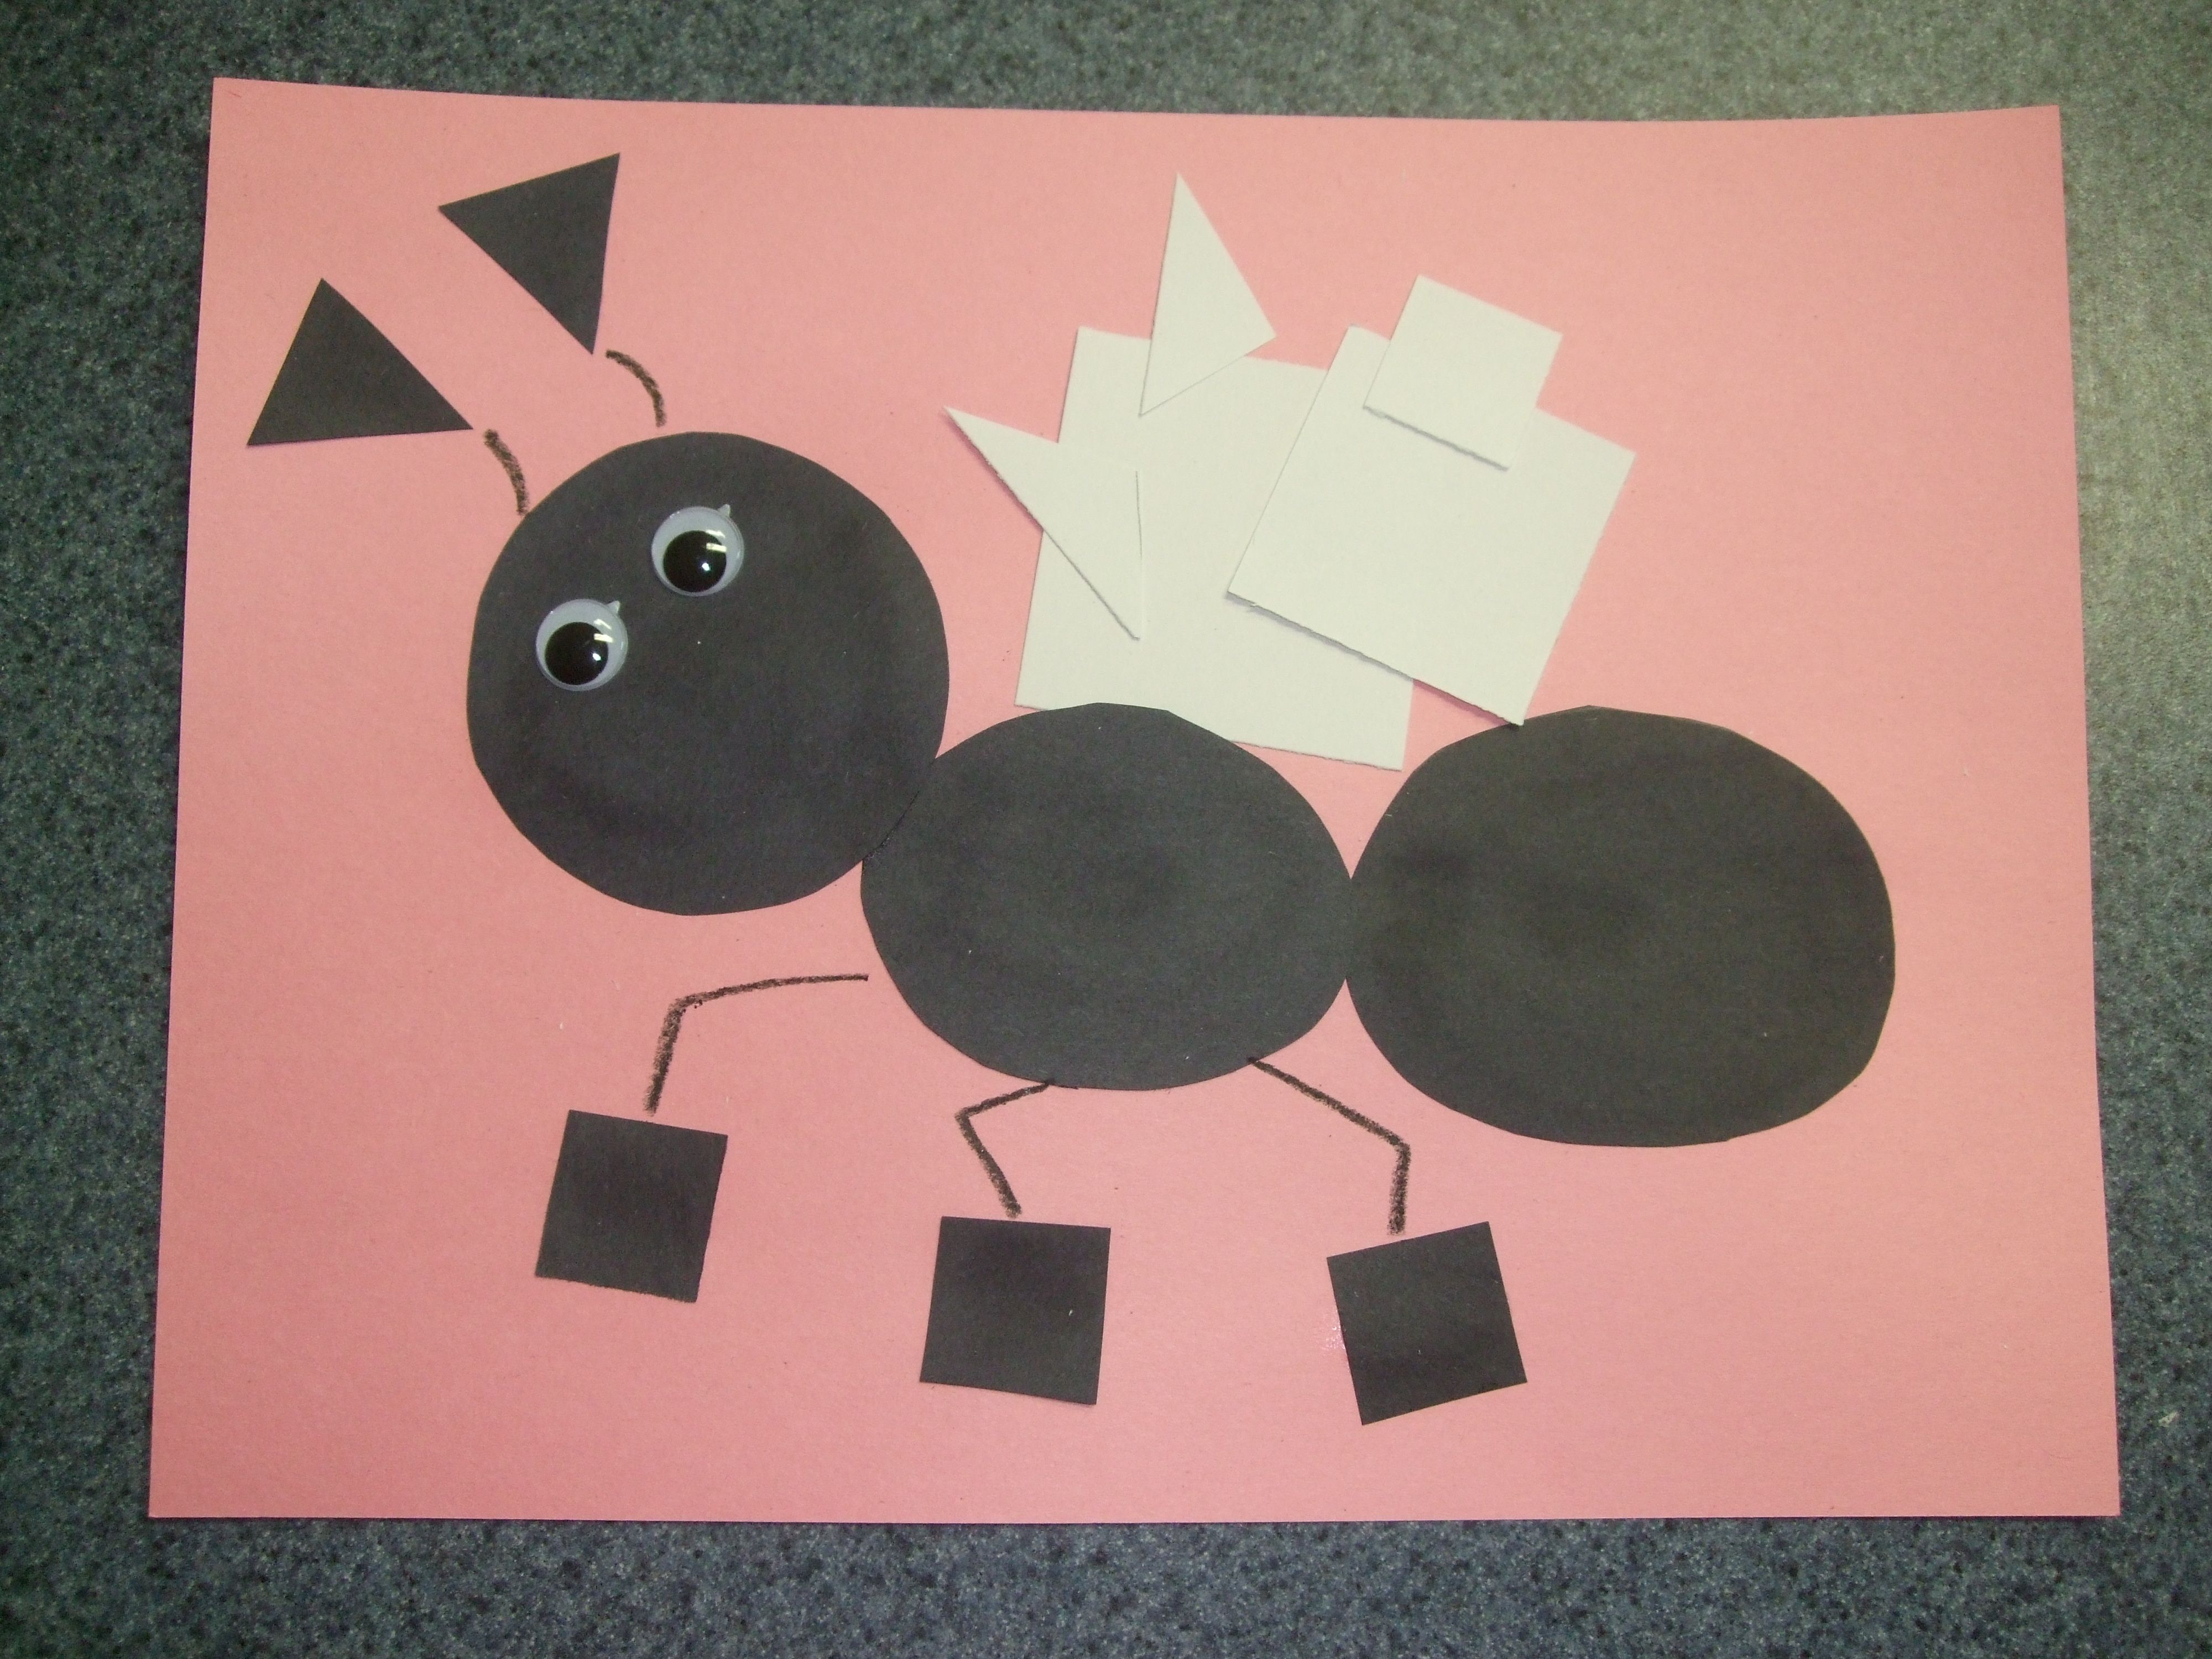 Kids Craft The Ant With Shapes Squares Triangles Circles Preschool Art Preschool Crafts Insects Preschool [ 3000 x 4000 Pixel ]